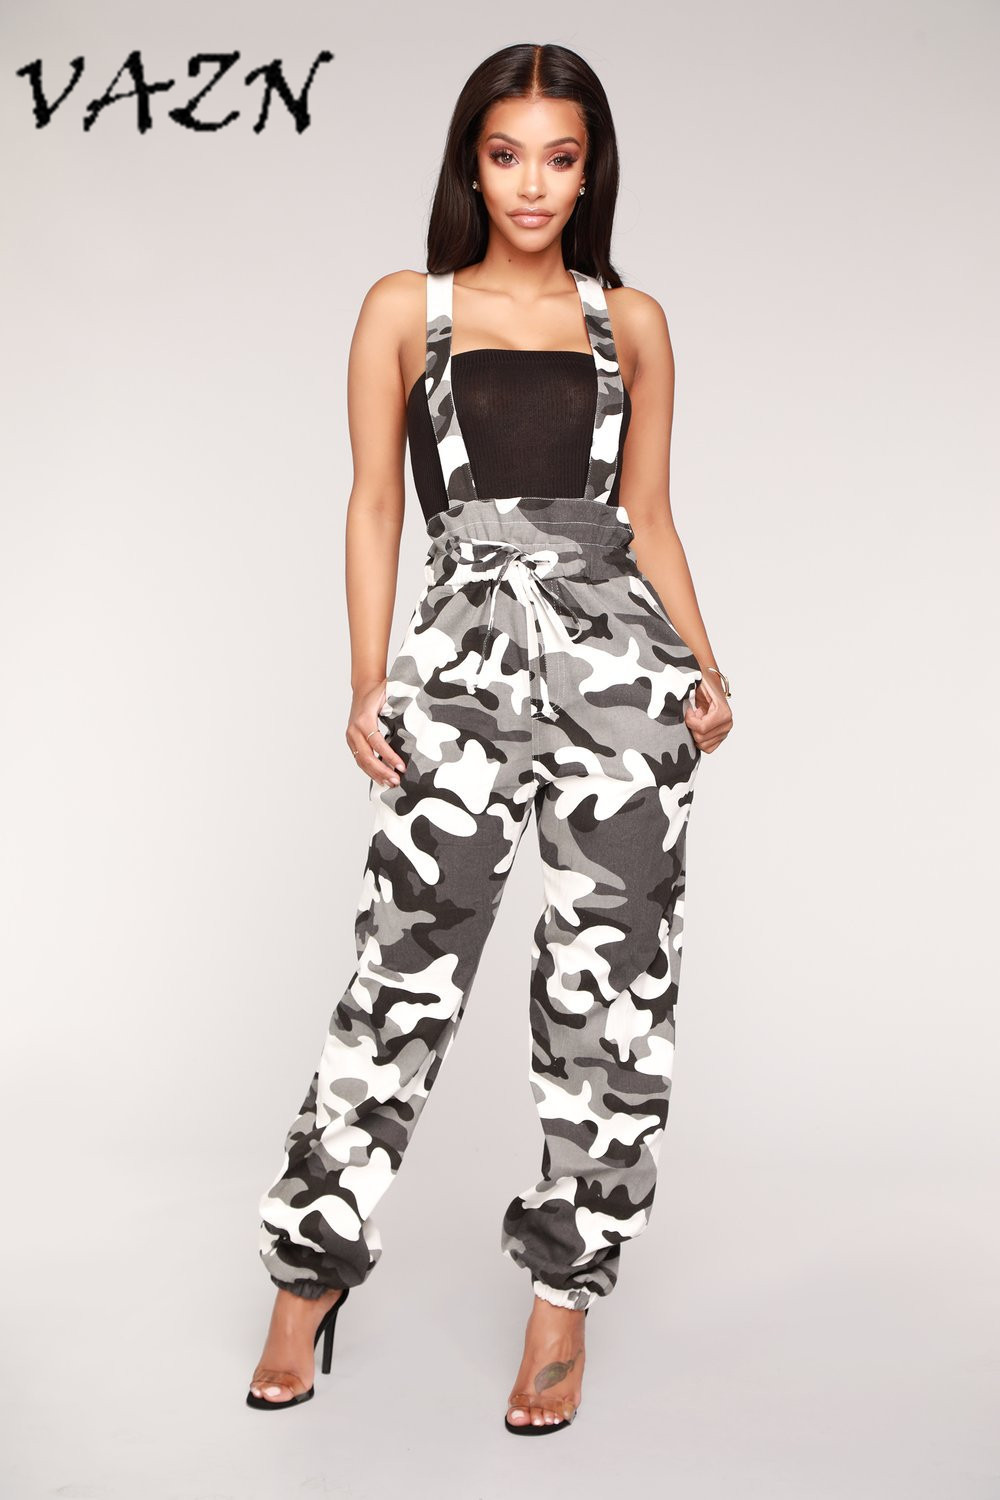 VAZN 2018 Hot Fashion Ladies Casual Style Women Jumpsuit Camouflage Overalls Bodycon Romper LS6122